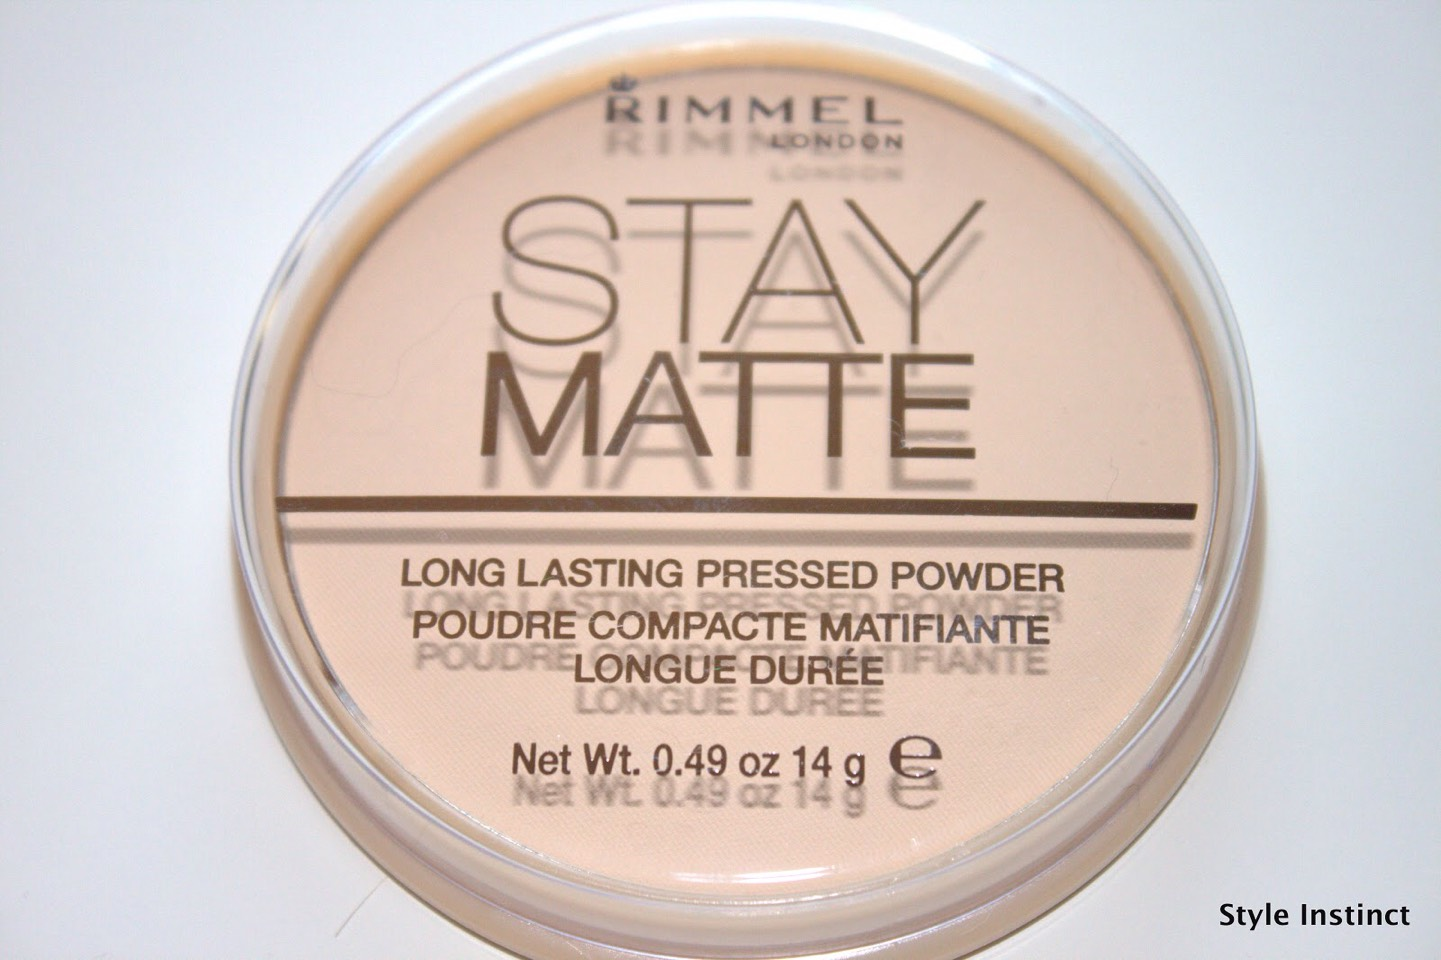 Finally...set the whole look with a powder, preferably matte which locks the foundation in and also keeps it shine free.